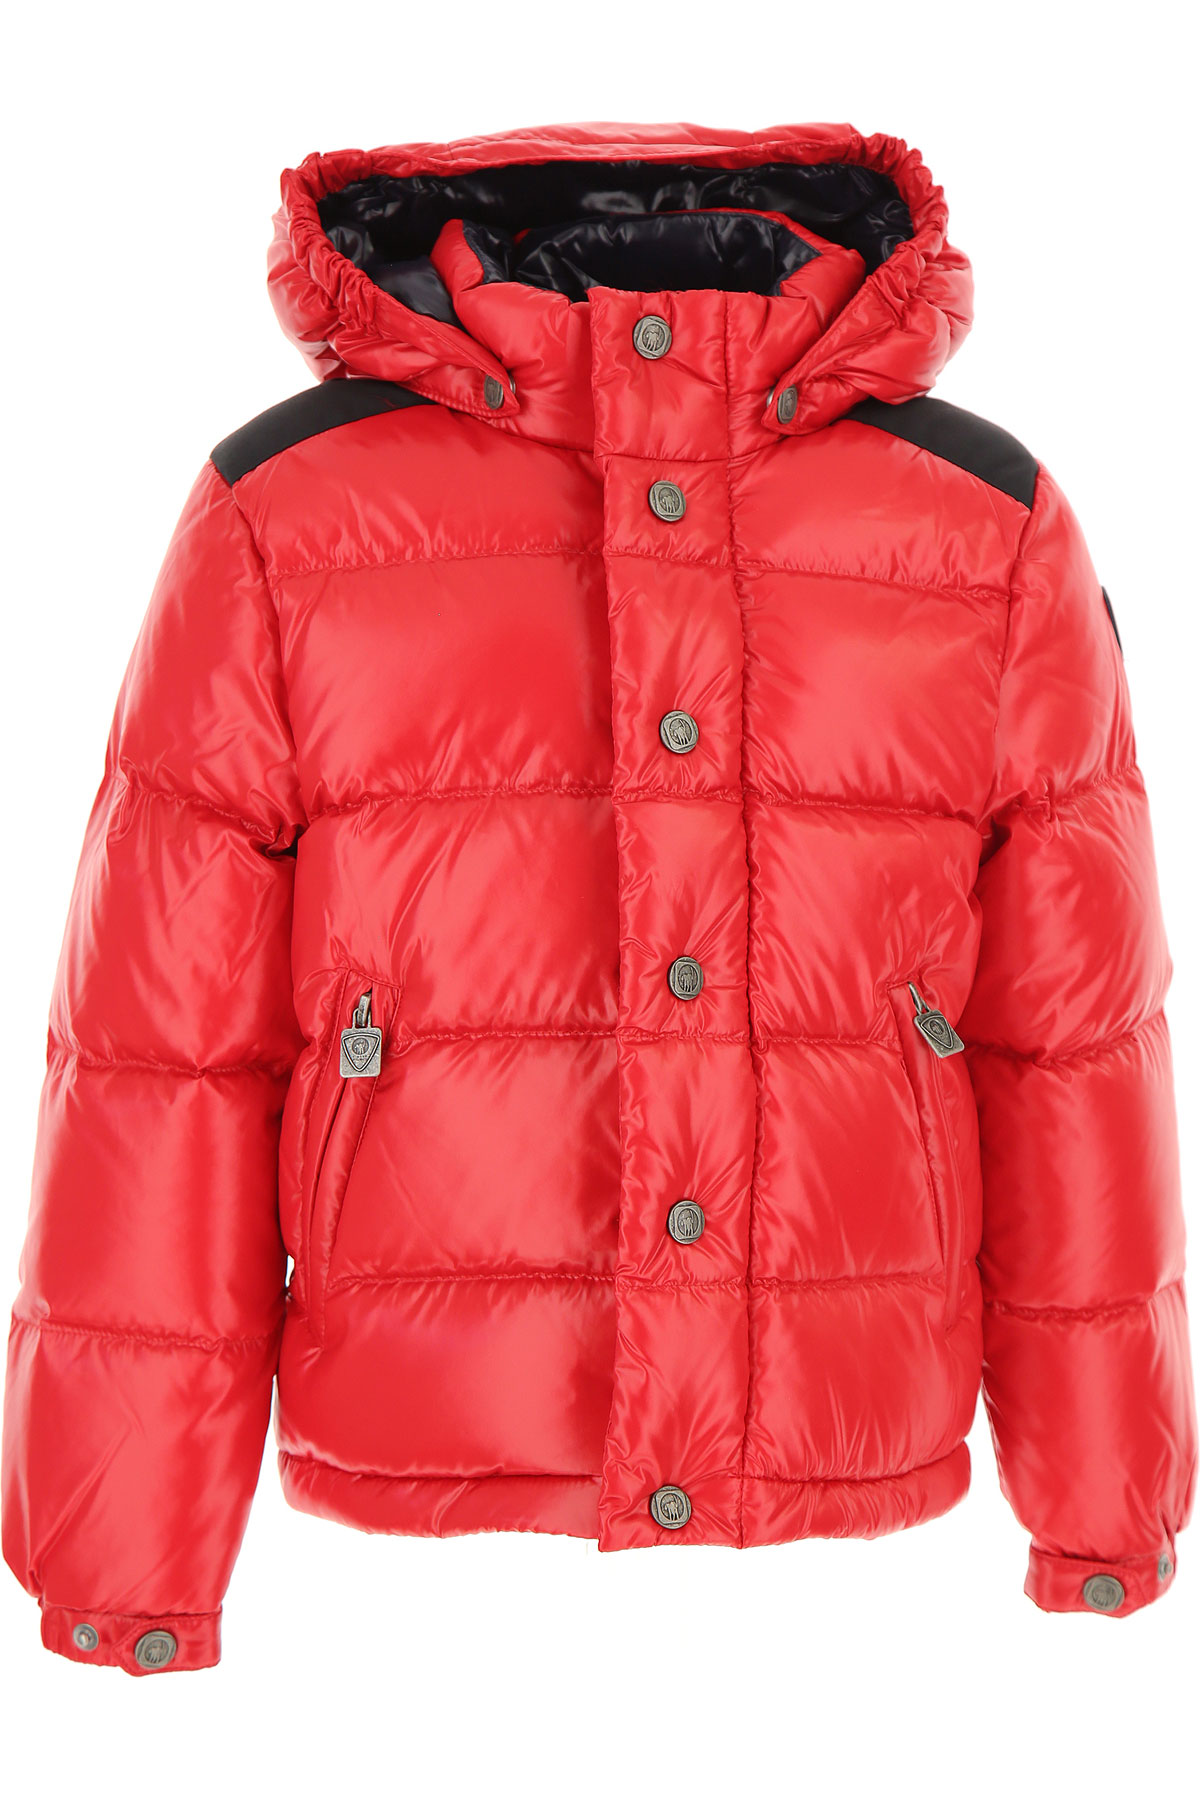 Ciesse Piumini Boys Down Jacket for Kids, Puffer Ski Jacket On Sale, Red, polyamide, 2019, 4Y 8Y